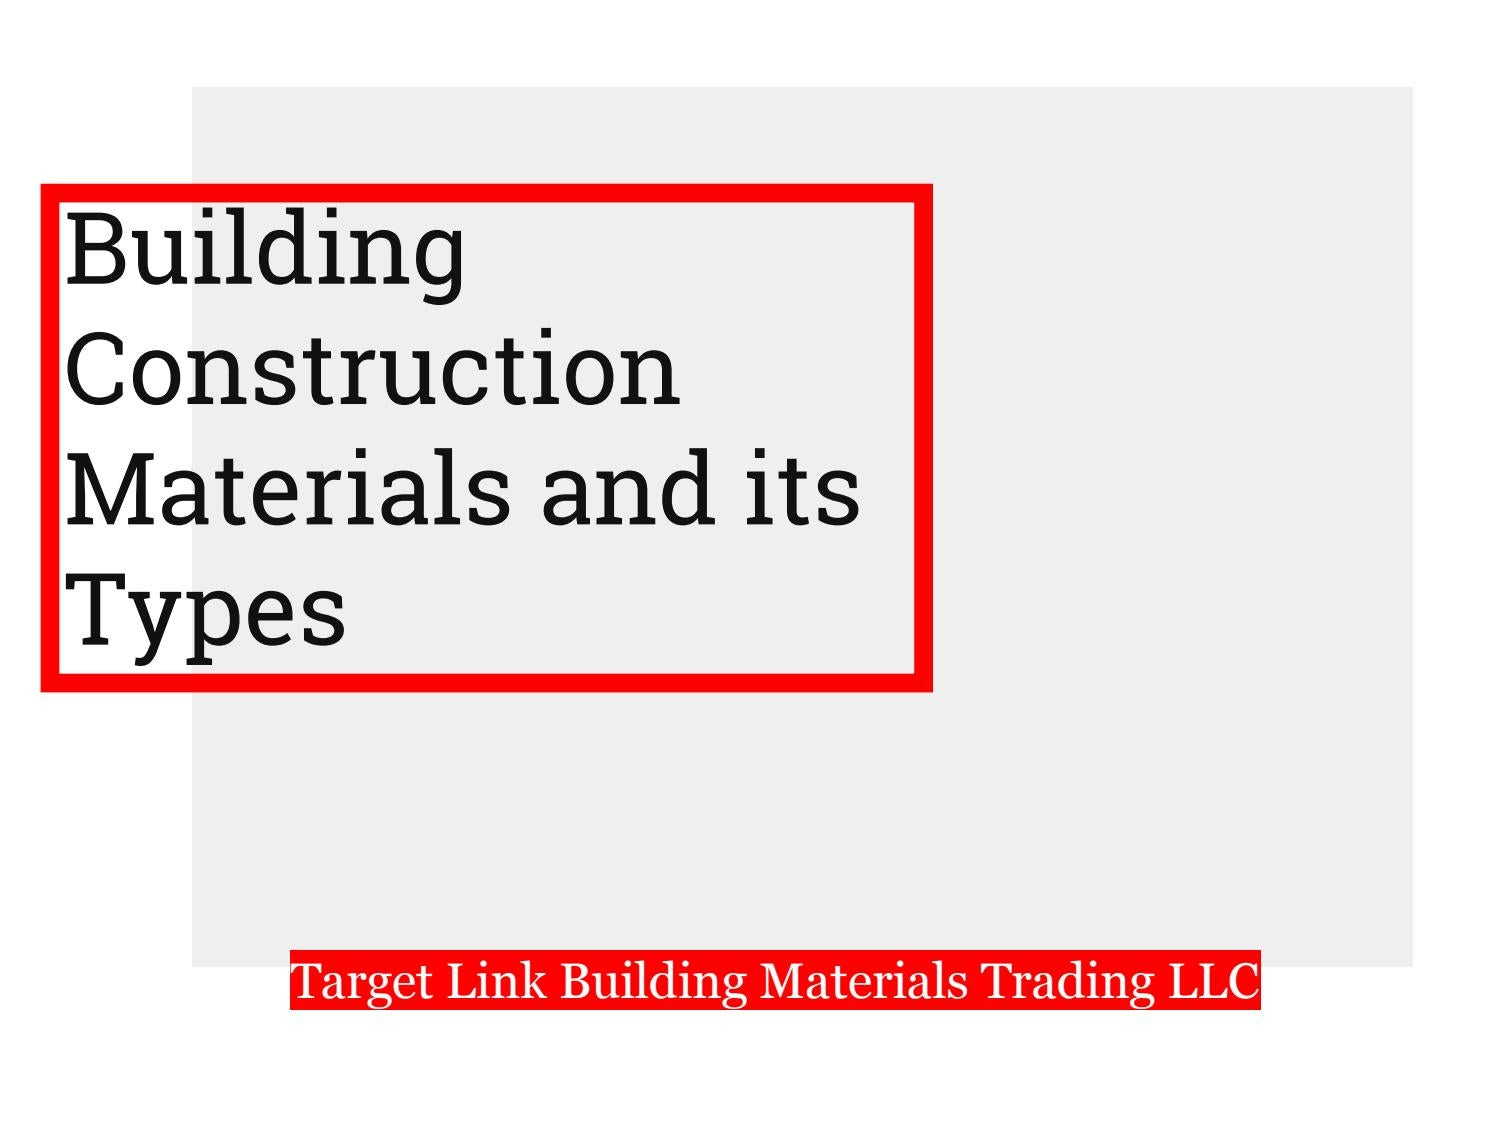 Building construction material Dubai by Targetlink Building